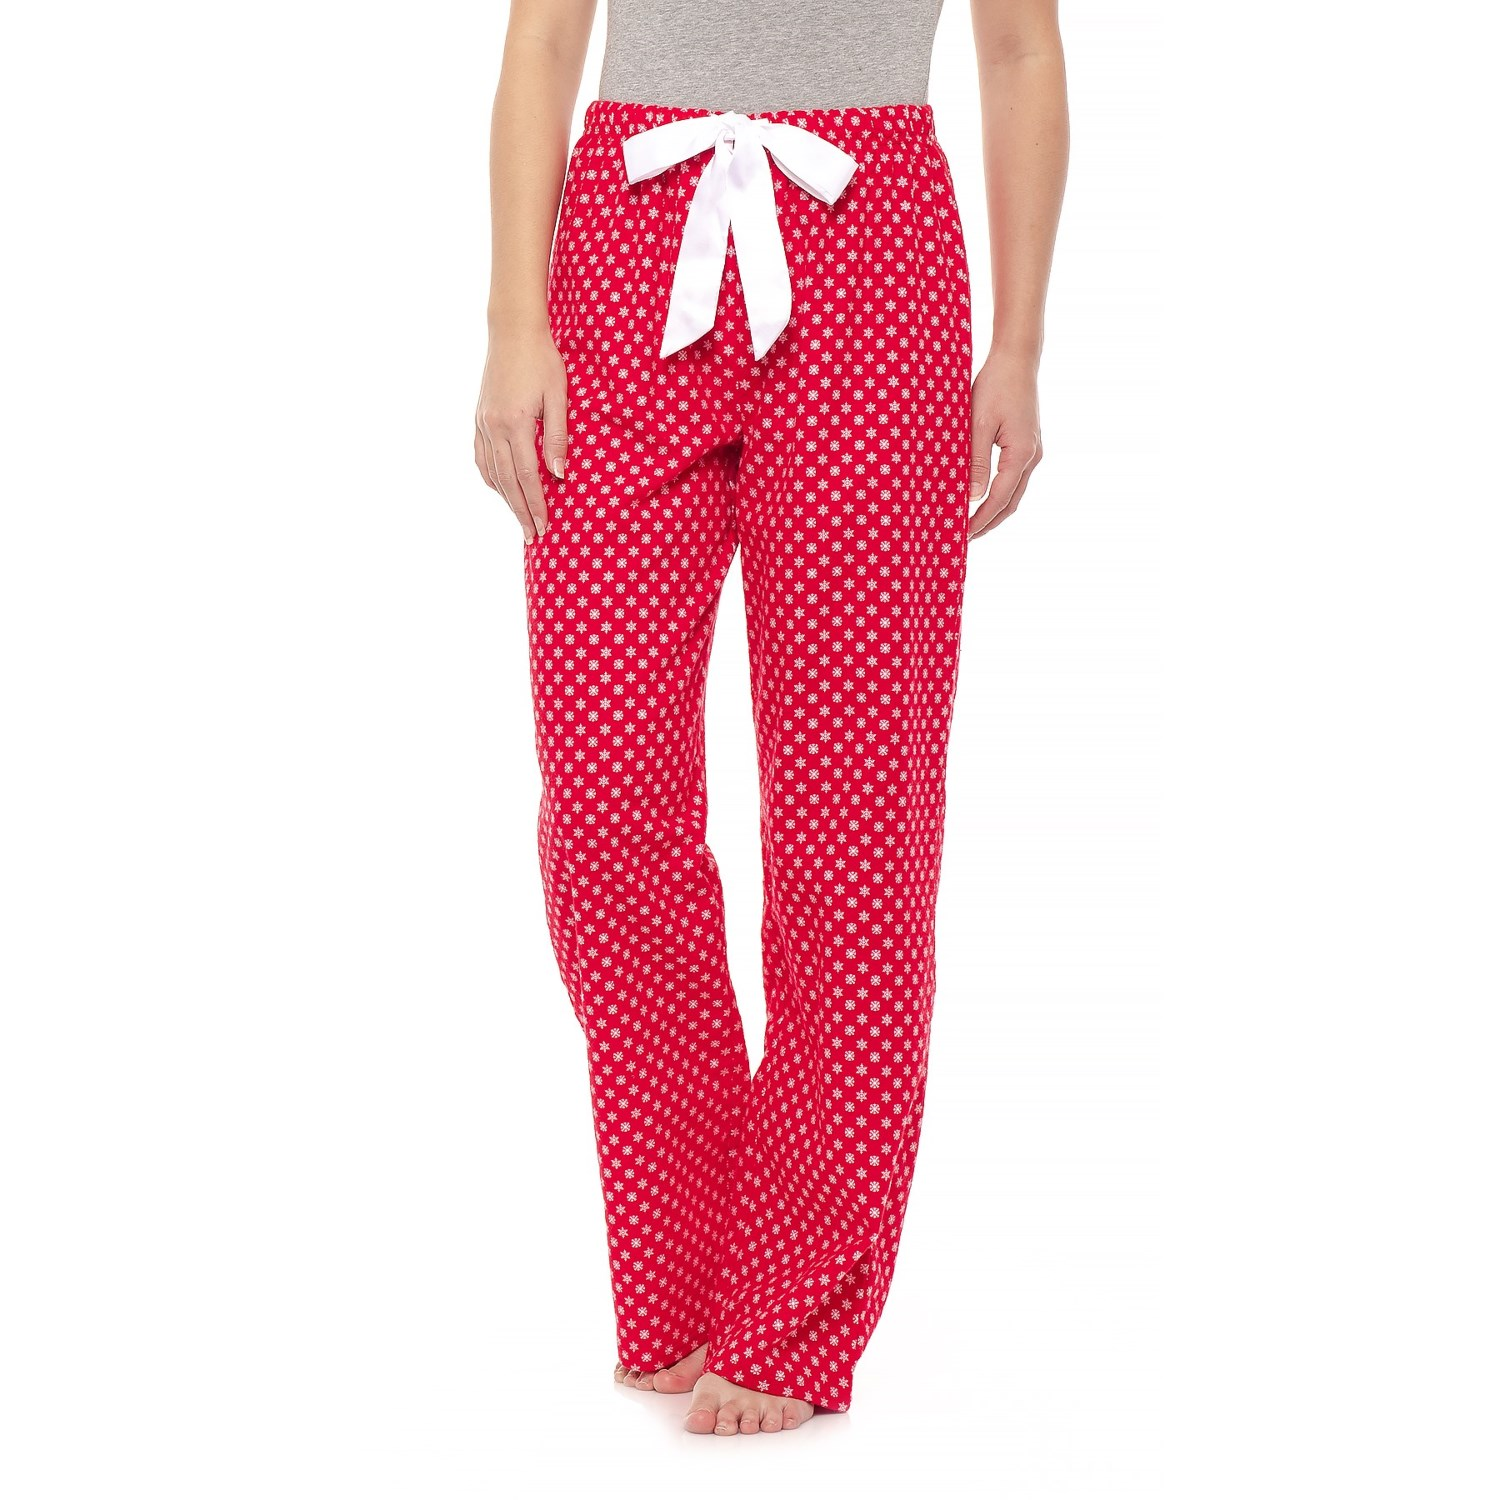 03ad46e8c06 KayAnna Printed Flannel Pajama Bottoms - Cotton (For Women) in Red Snowflake